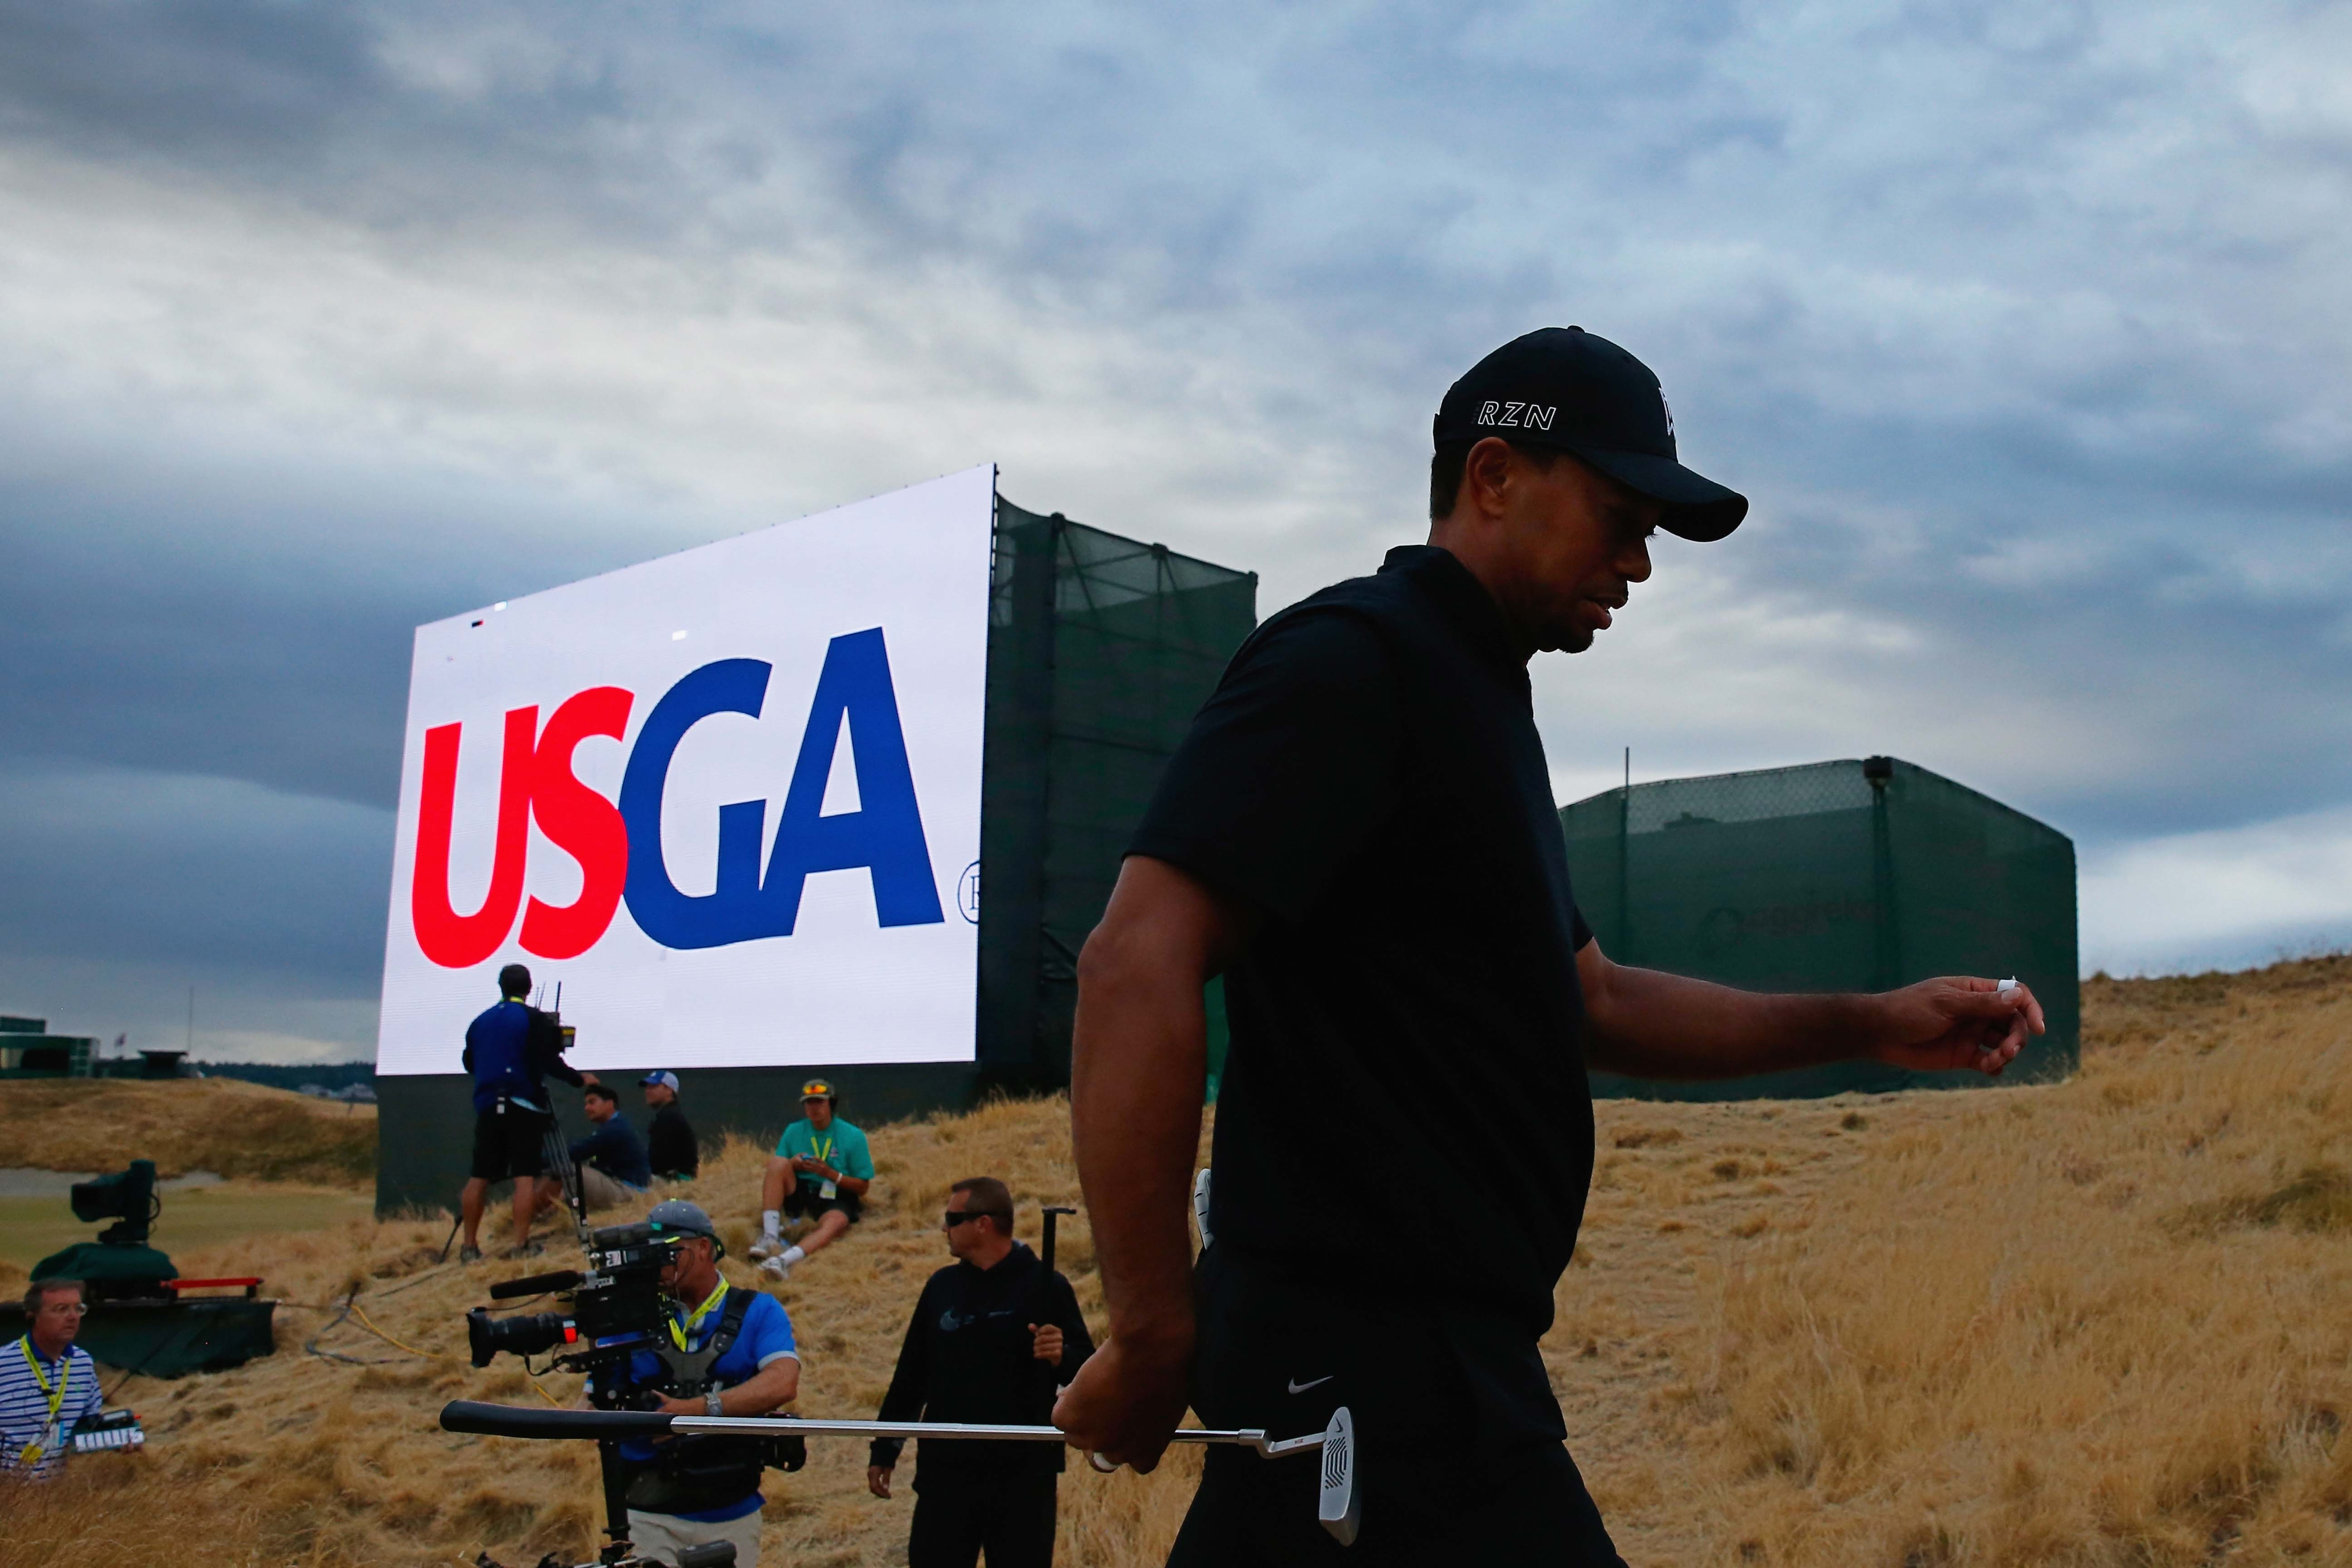 Another year, another missed U.S. Open